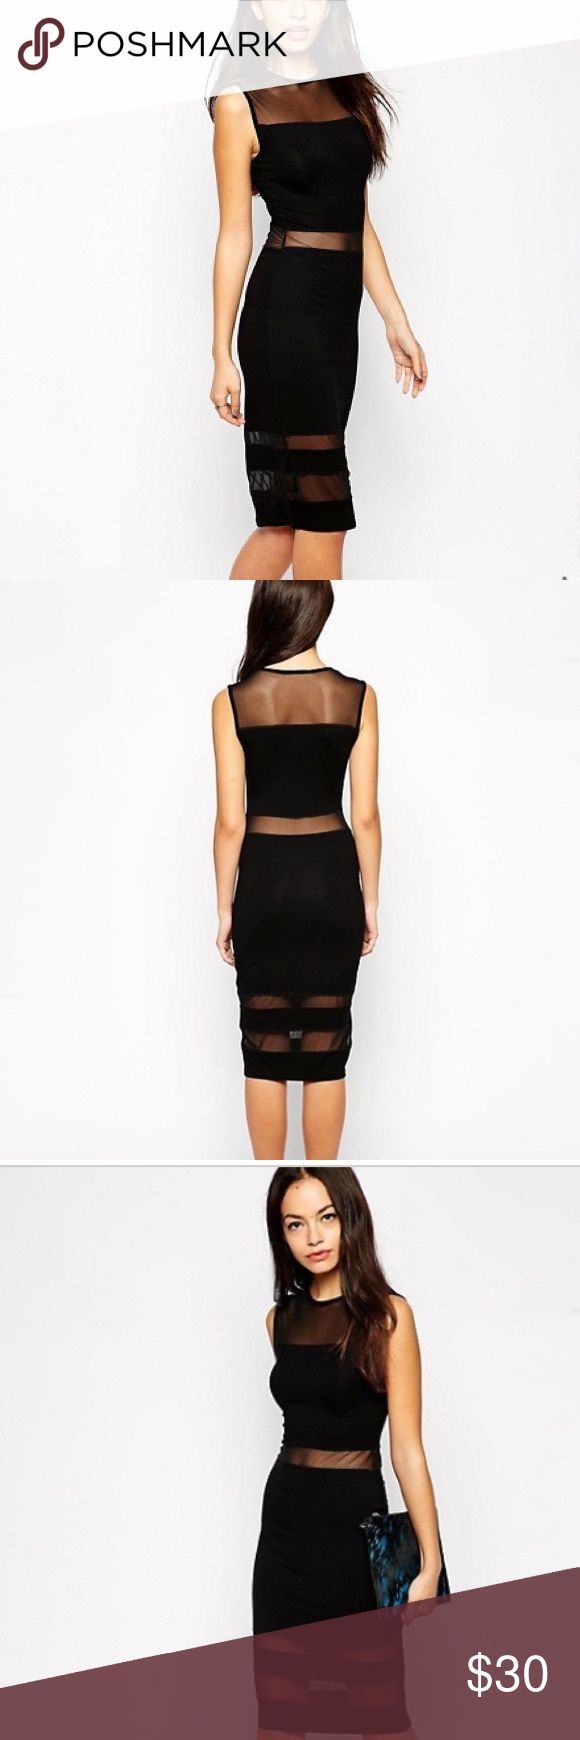 ASOS PETITE Bodycon Midi Dress with Sheer Insert Every girl needs a black dress. And this ones guaranteed to turn heads. 👀 Like new, in excellent condition. Worn only once ASOS Petite Dresses Midi